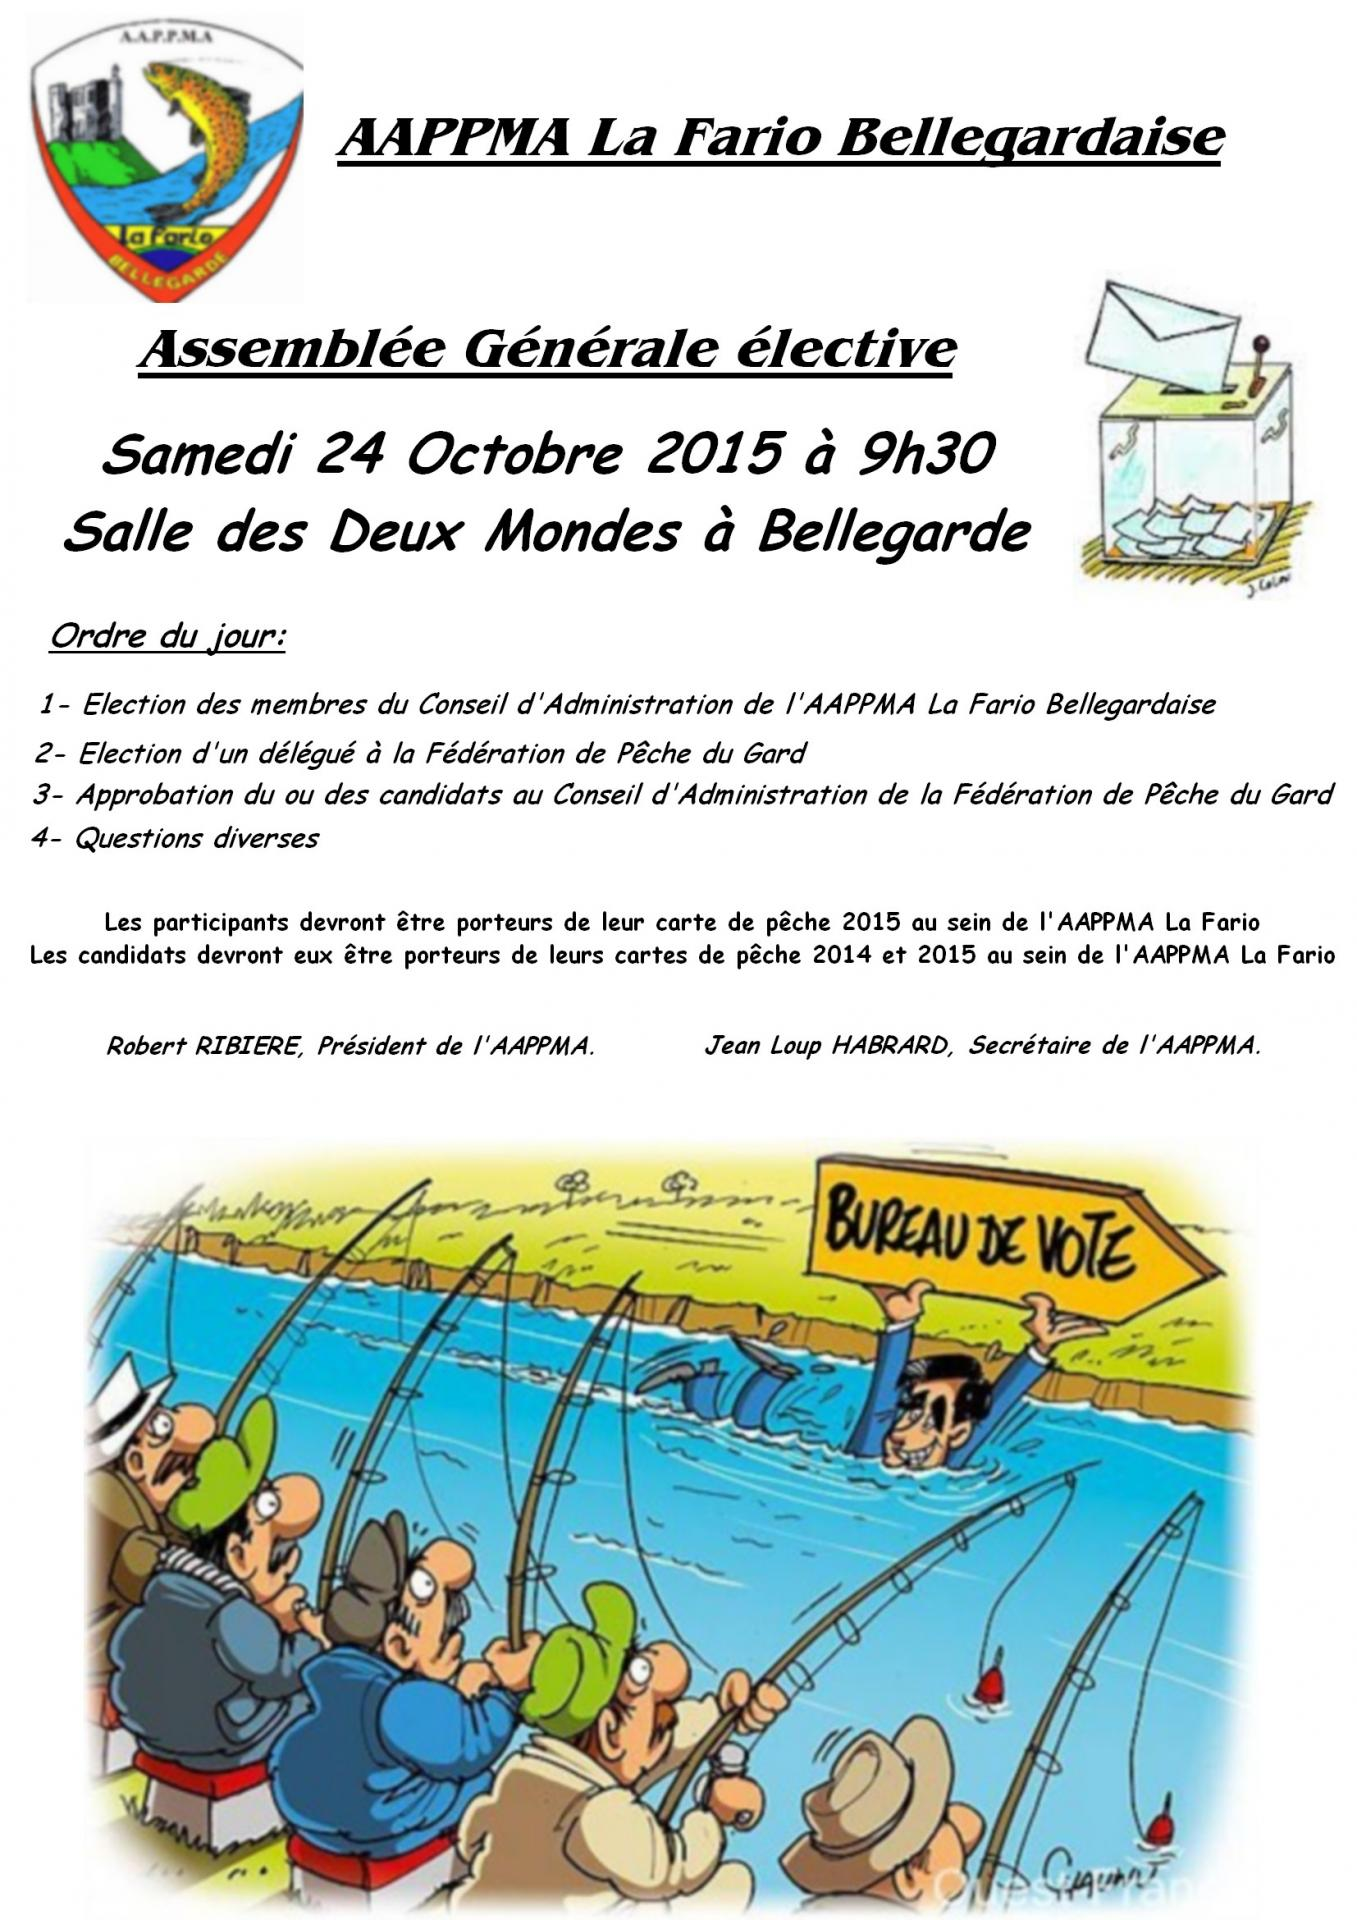 Affiche elections aappma bellegarde